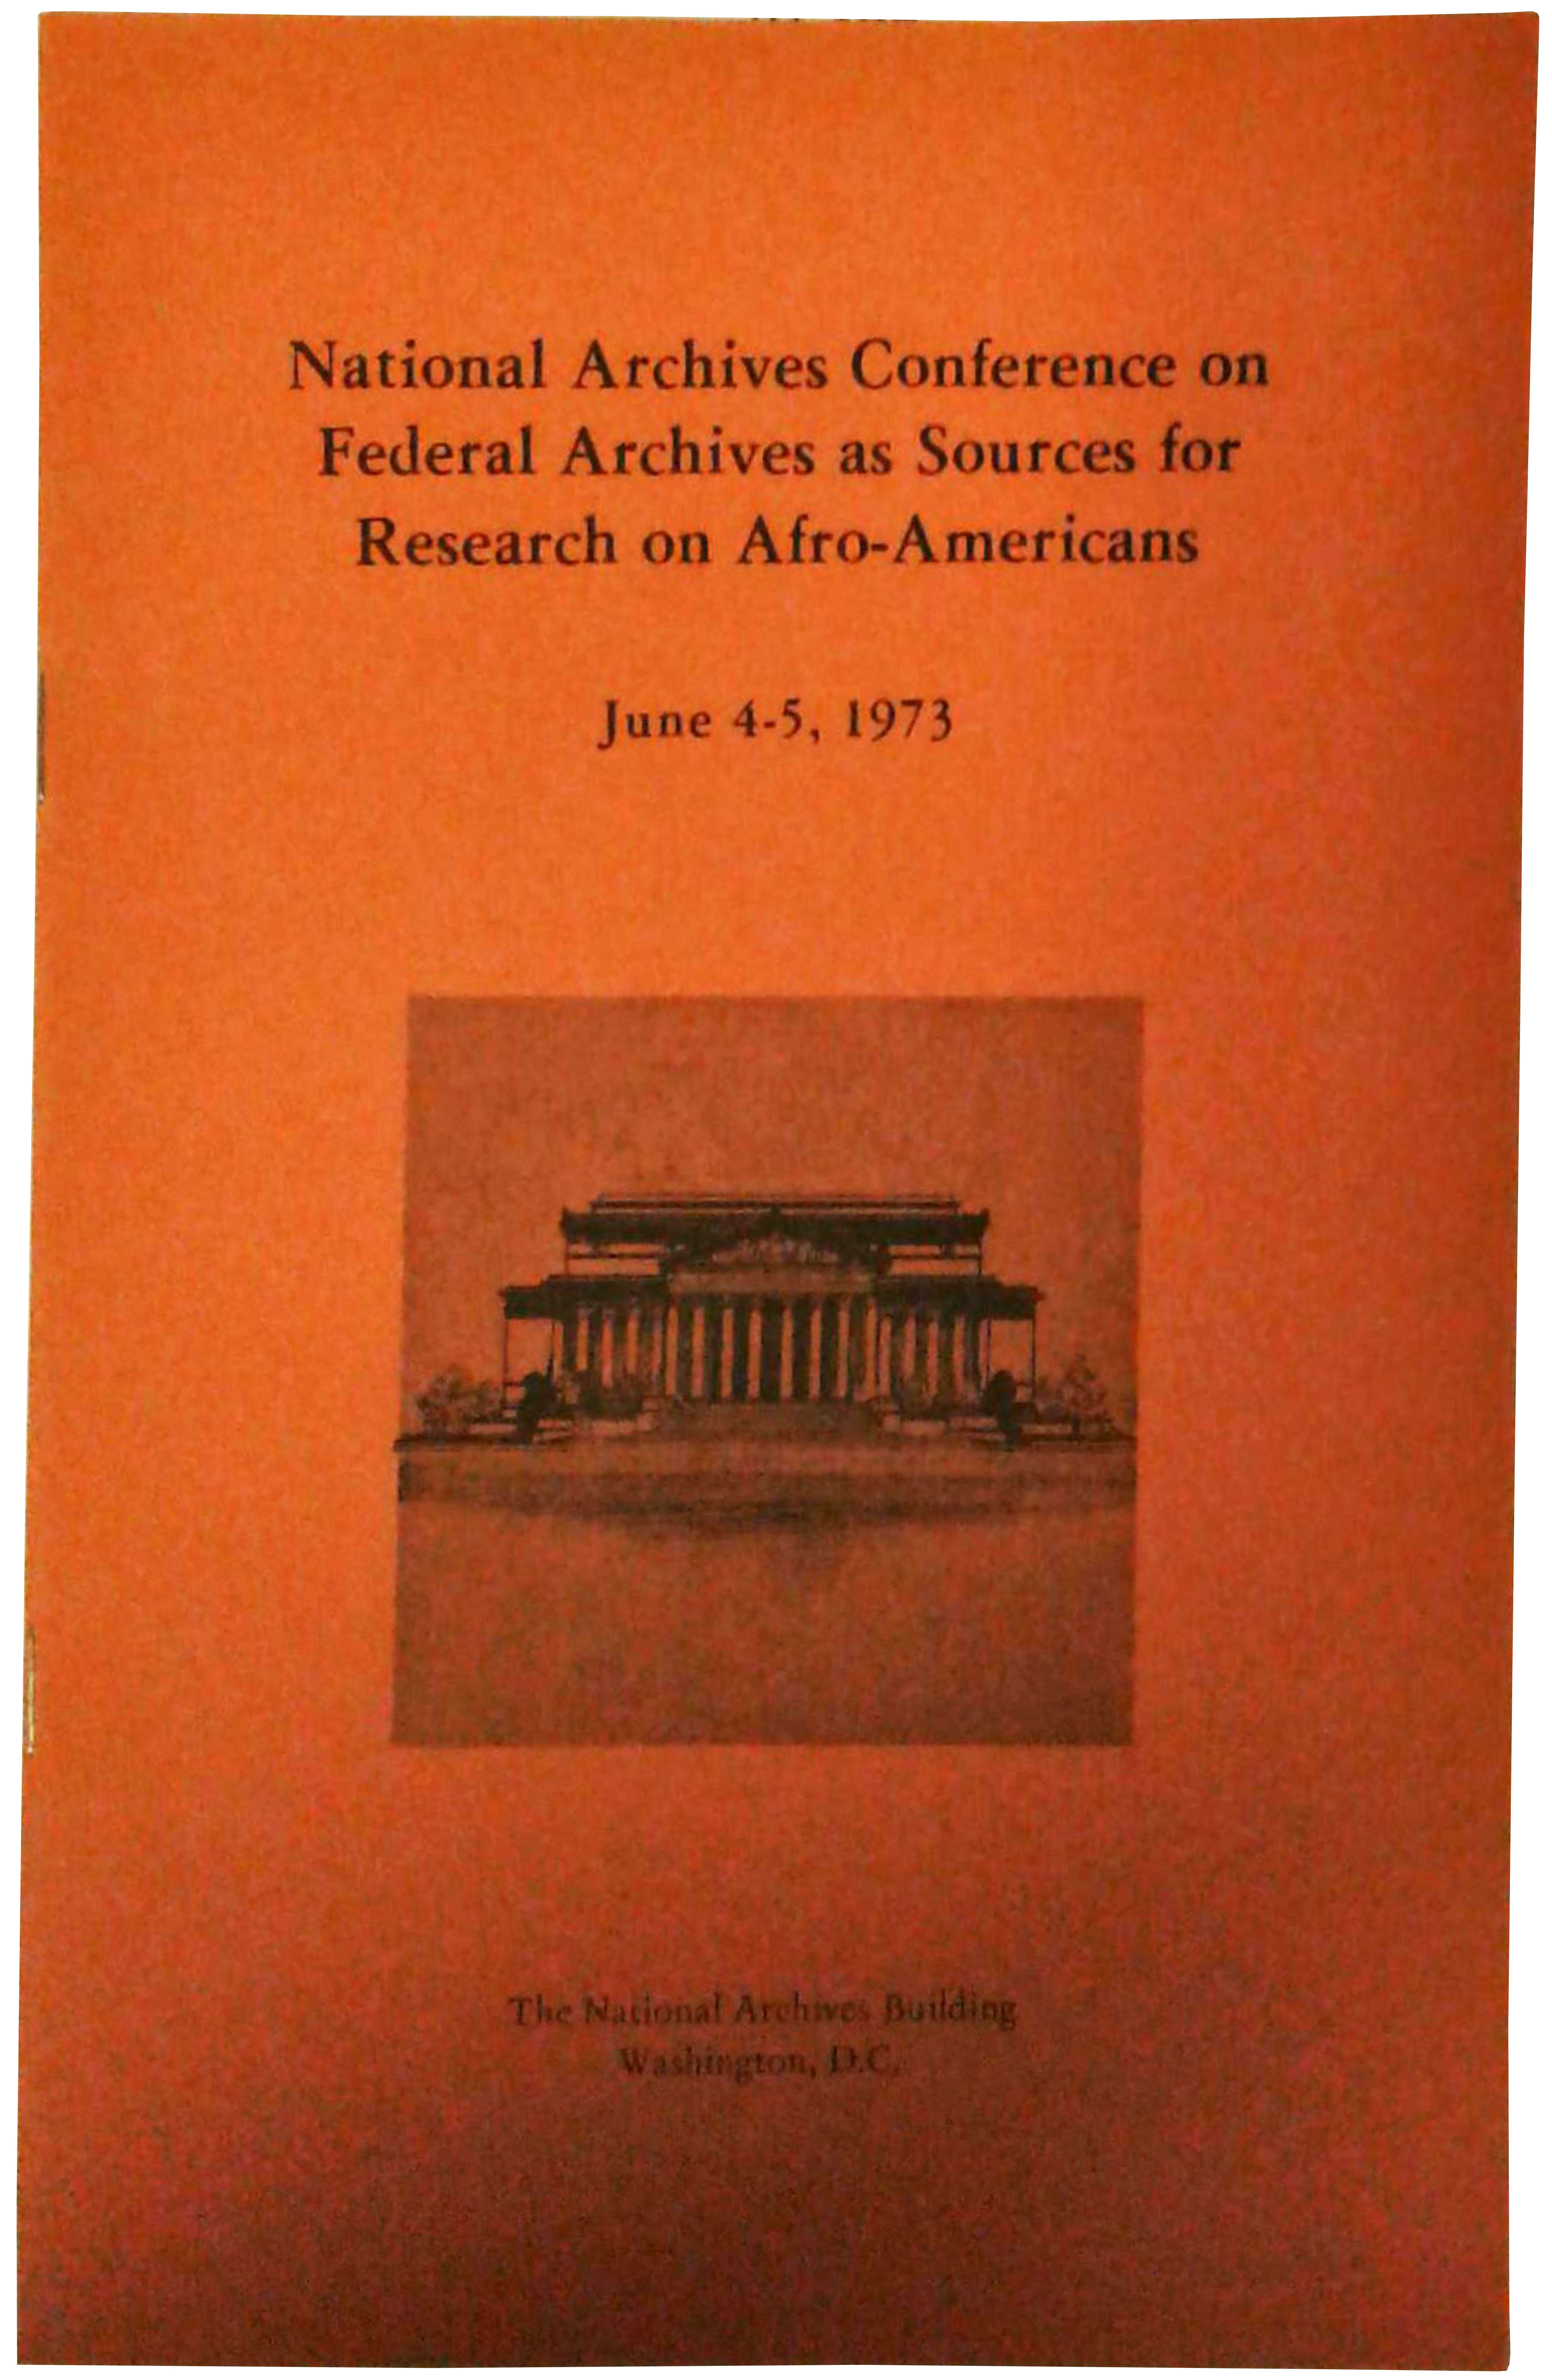 1973-june-na-conference-aa-history_program_rg-64_-a1-8_bx-41_fld-16-94-1